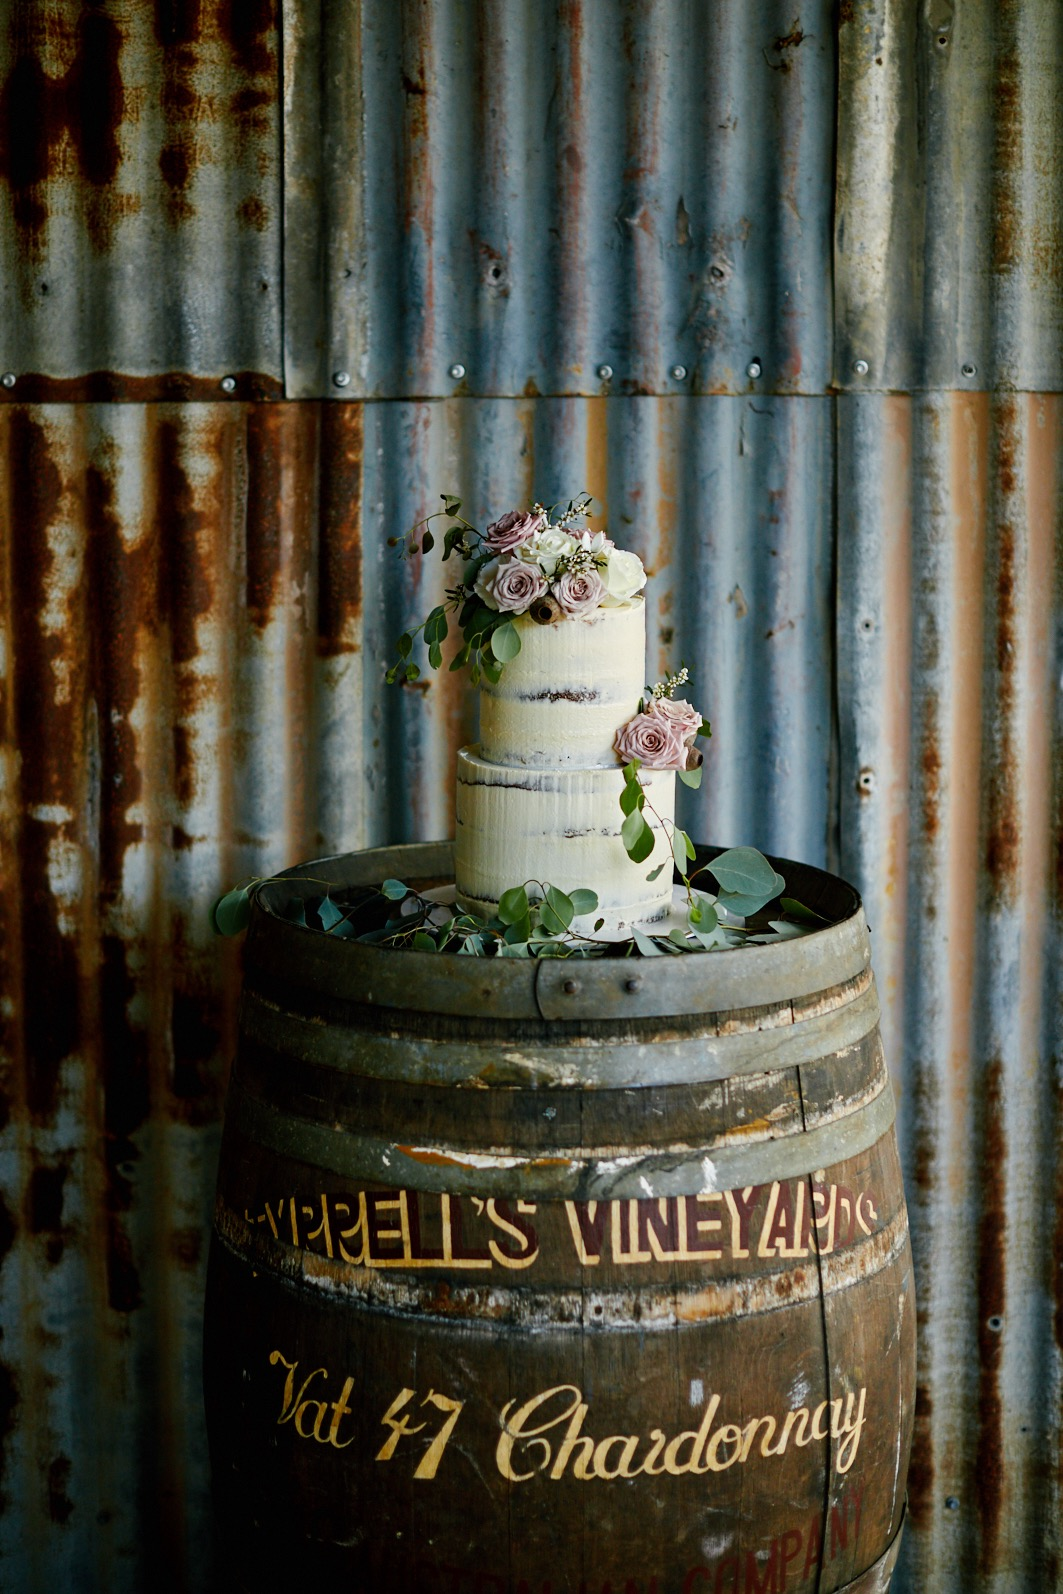 Two tier semi naked cake with pink flowers displayed on a barrel at The Stables of Somersby barn rustic wedding venue in NSW Central Coast